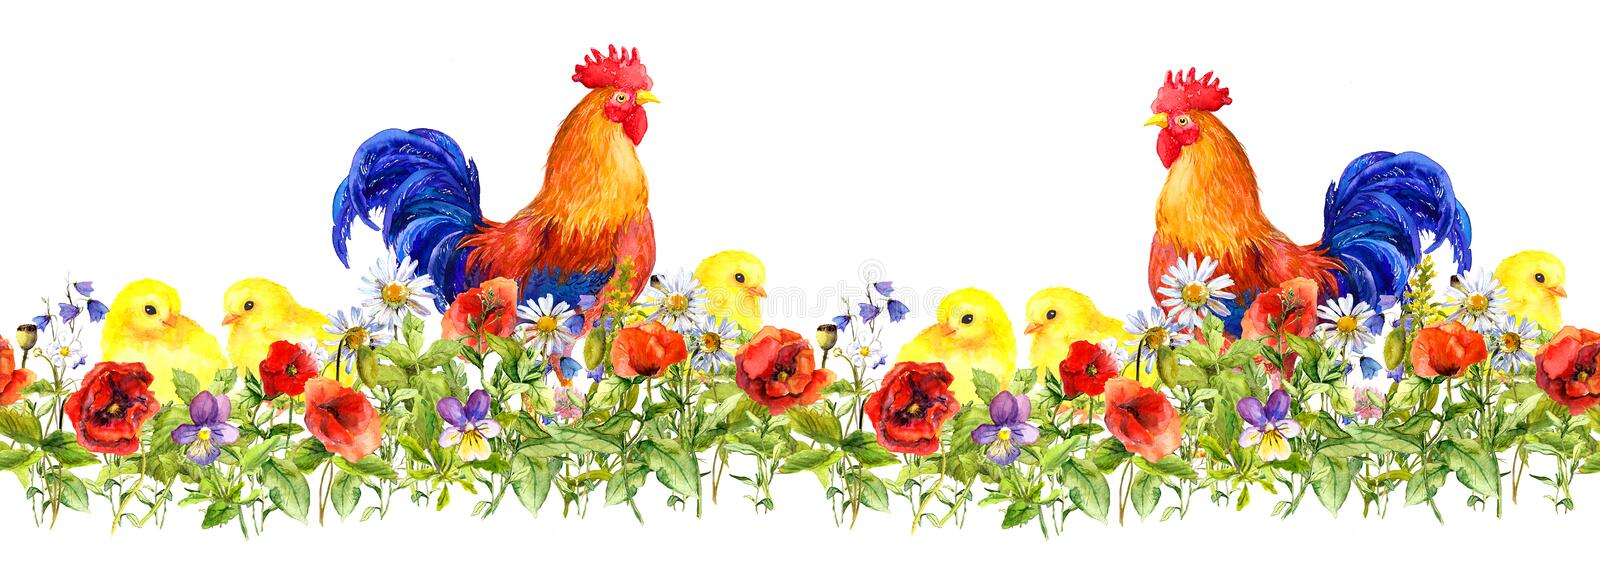 Rooster and small chicks in grass, flowers. Seamless pattern. Watercolor. Rooster and small chicks in grass and flowers. Seamless pattern. Watercolor stock photo